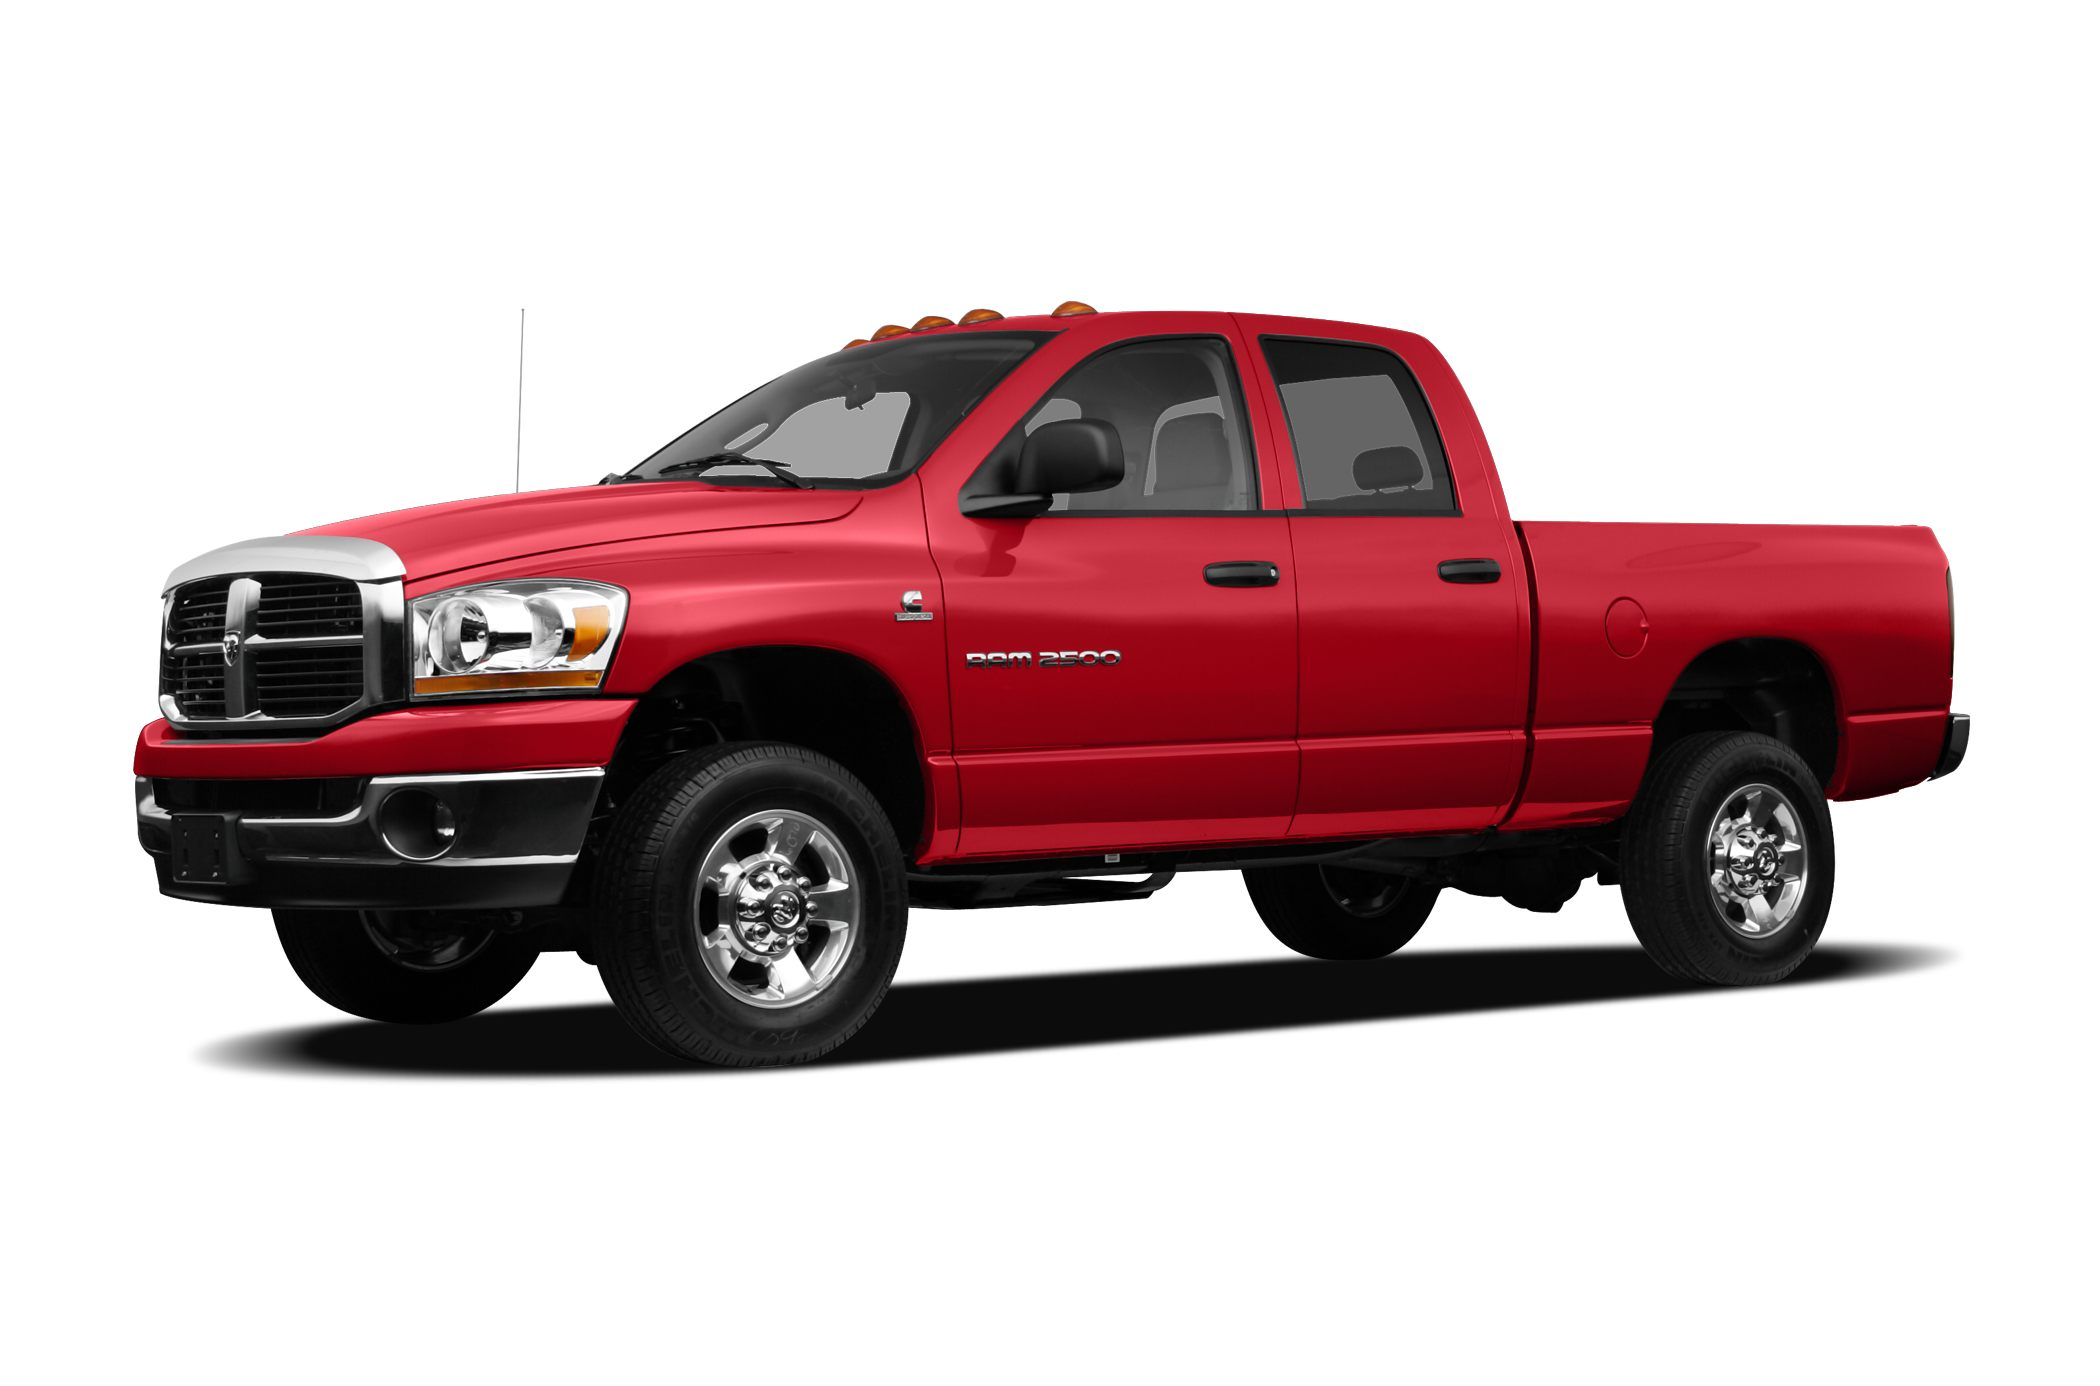 2009 Dodge Ram 2500 SLT Stop Clicking Now Call Kraig at 866-372-1761 I wont waste your time or